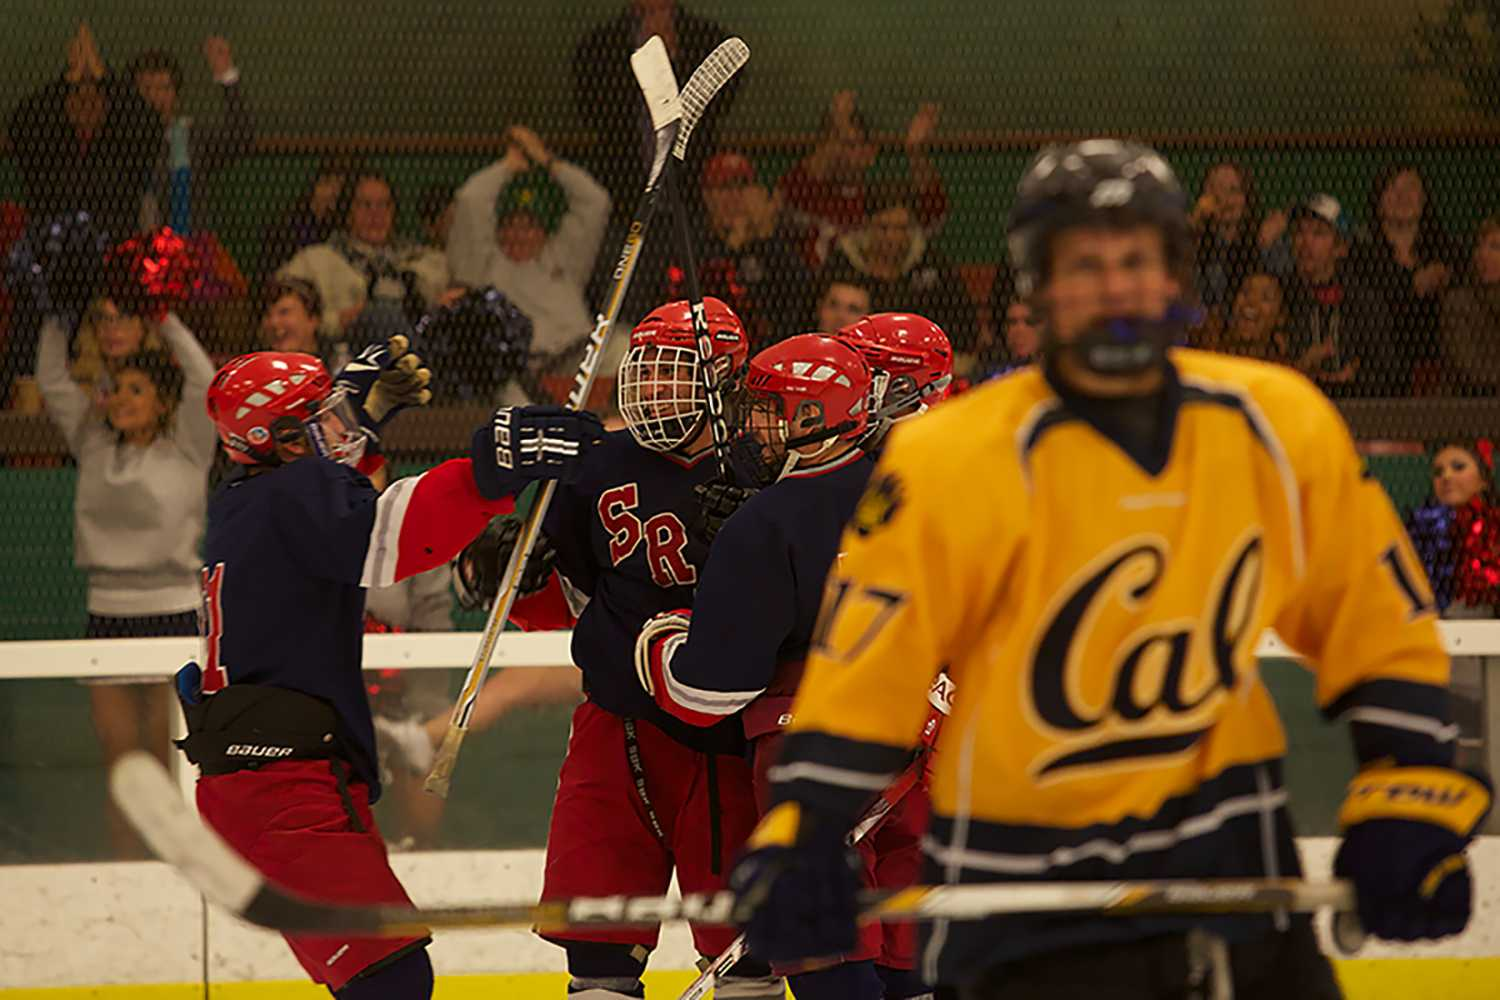 SRJC celebrates a goal after scoring another against Cal Sept 21 at Snoopy's Ice Arena in Santa Rosa.